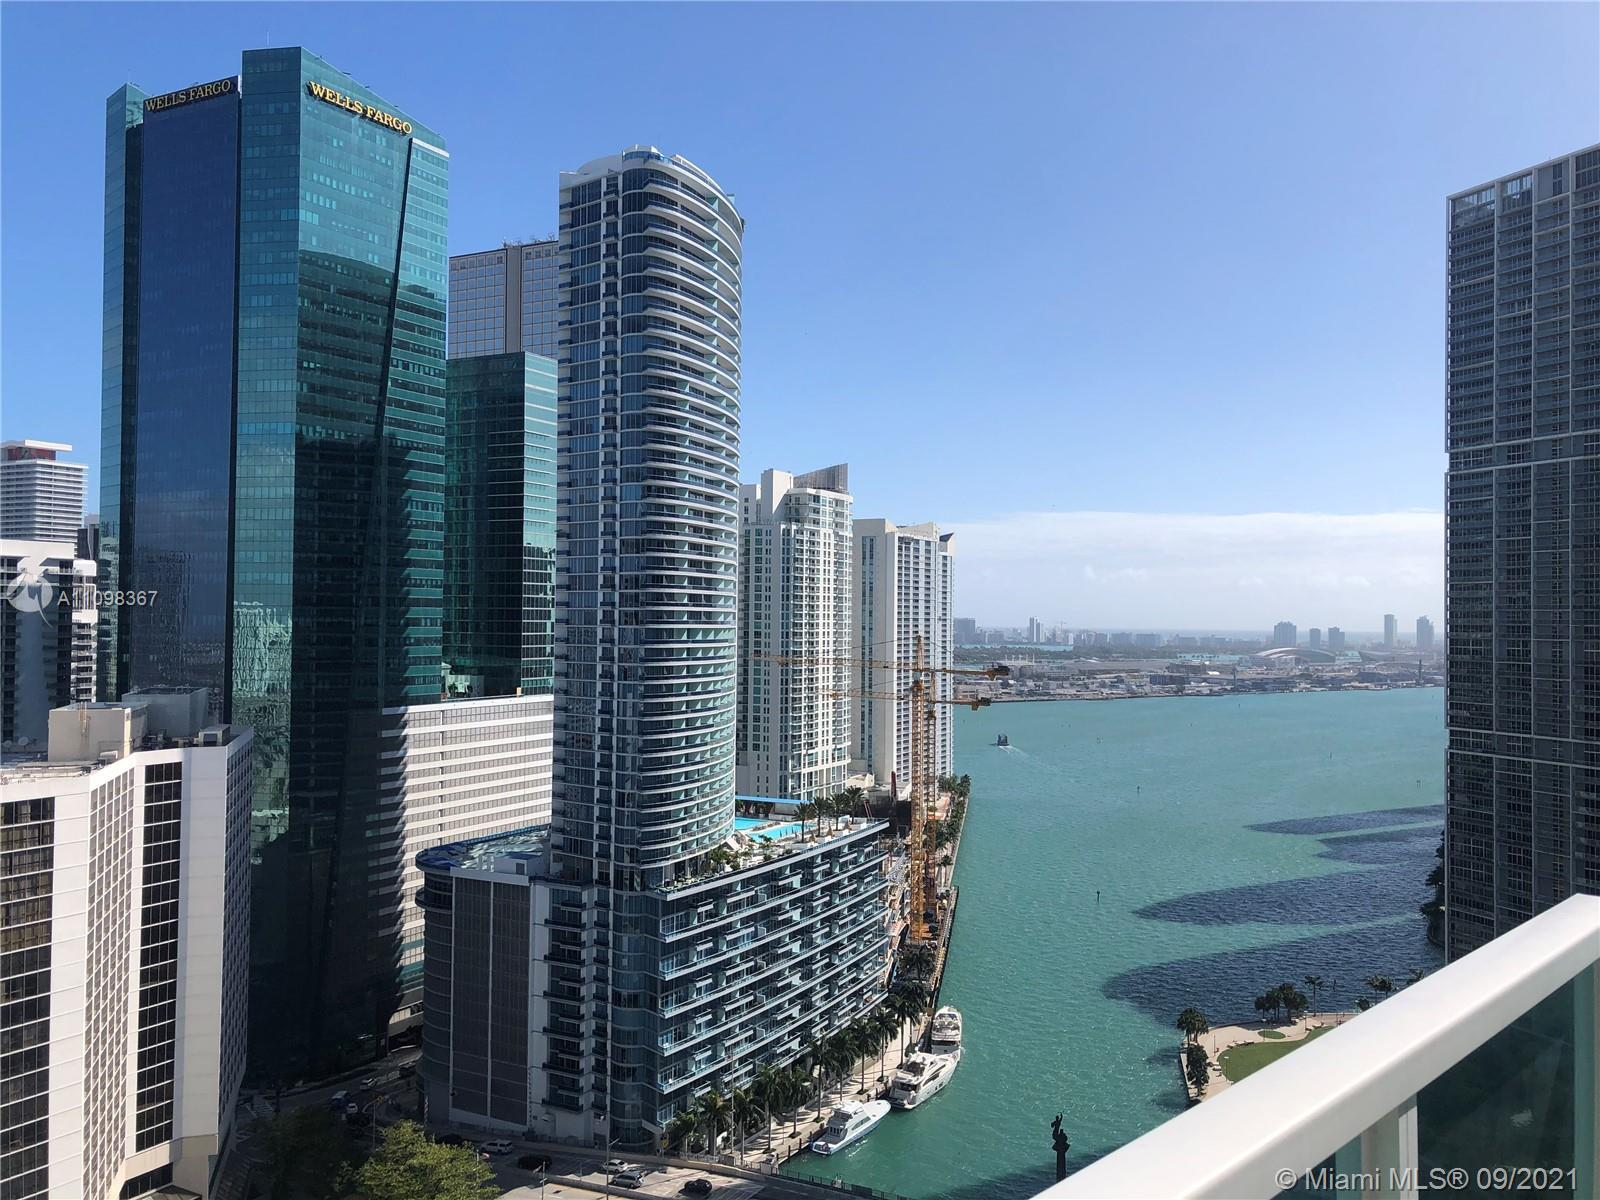 LOCATION! BEAUTIFUL LOFT IN THE HEART OF BRICKELL, 2BD/2BA, CORNER UNIT FACING NE WITH BAY, RIVER AN